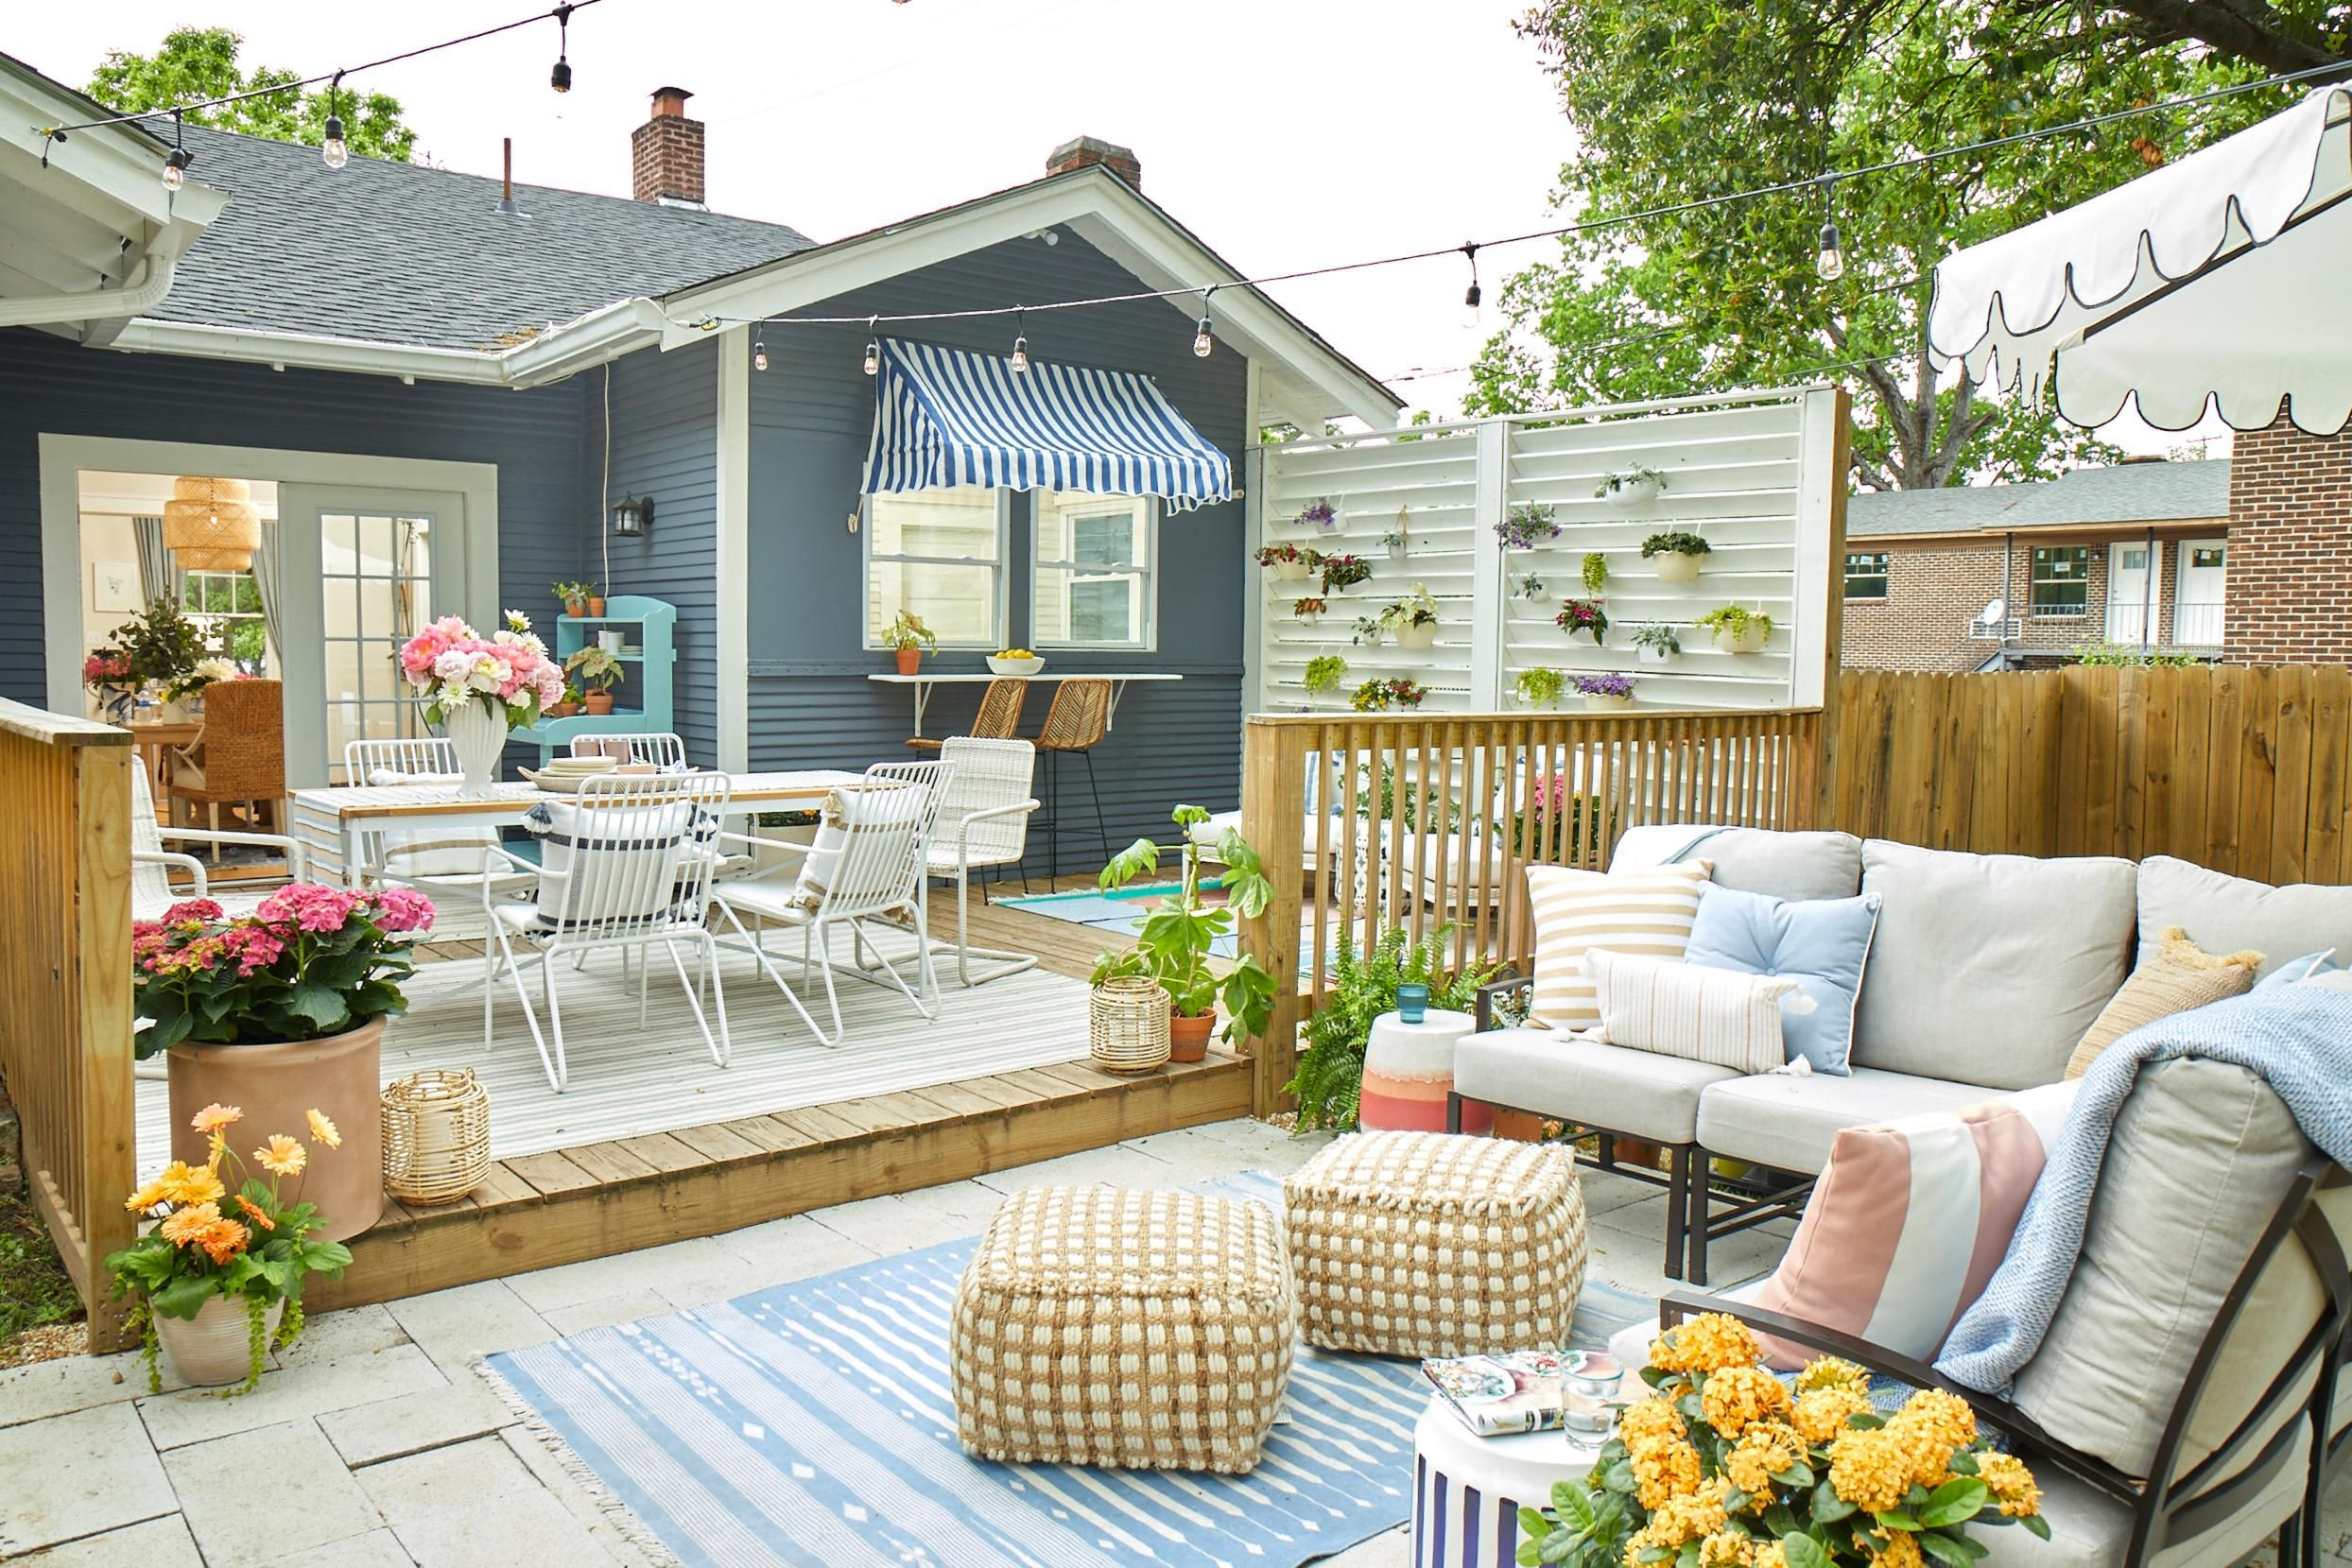 5 decorating tips to turn your little   courtyard into an outdoor oasis